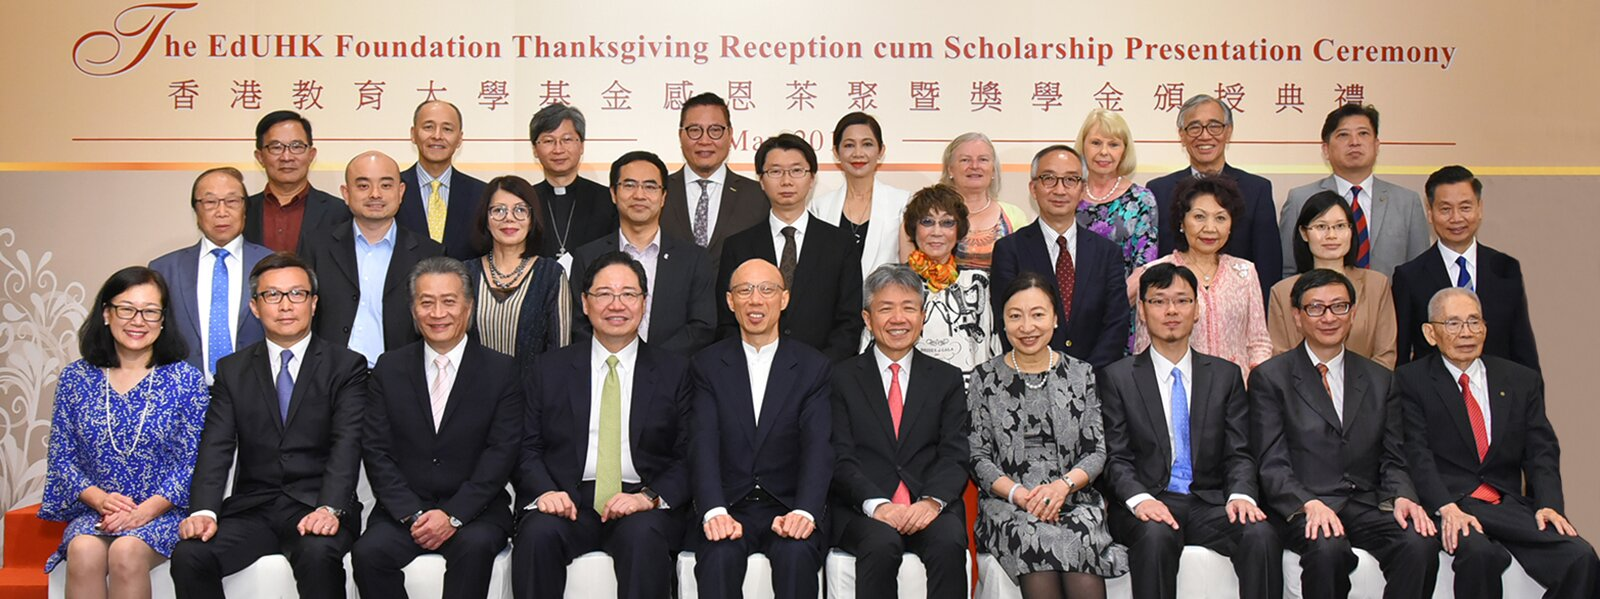 EdUHK Presents Scholarships to Recognise Student Achievement